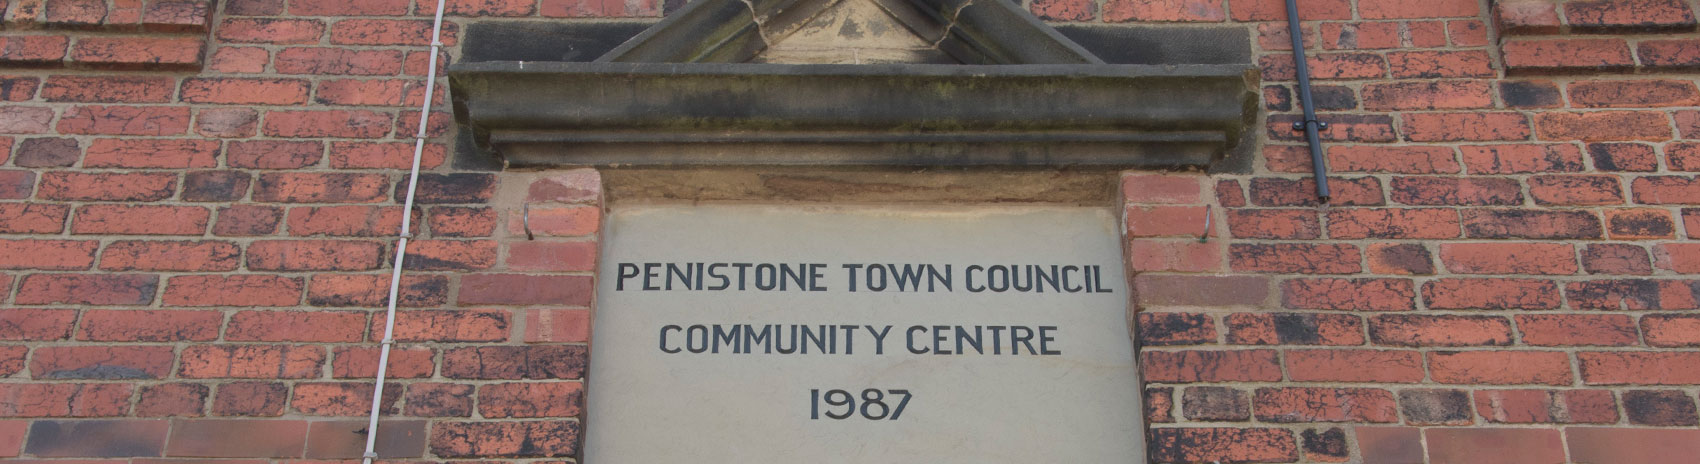 Penistone Town Council Offices at St John's Community Centre